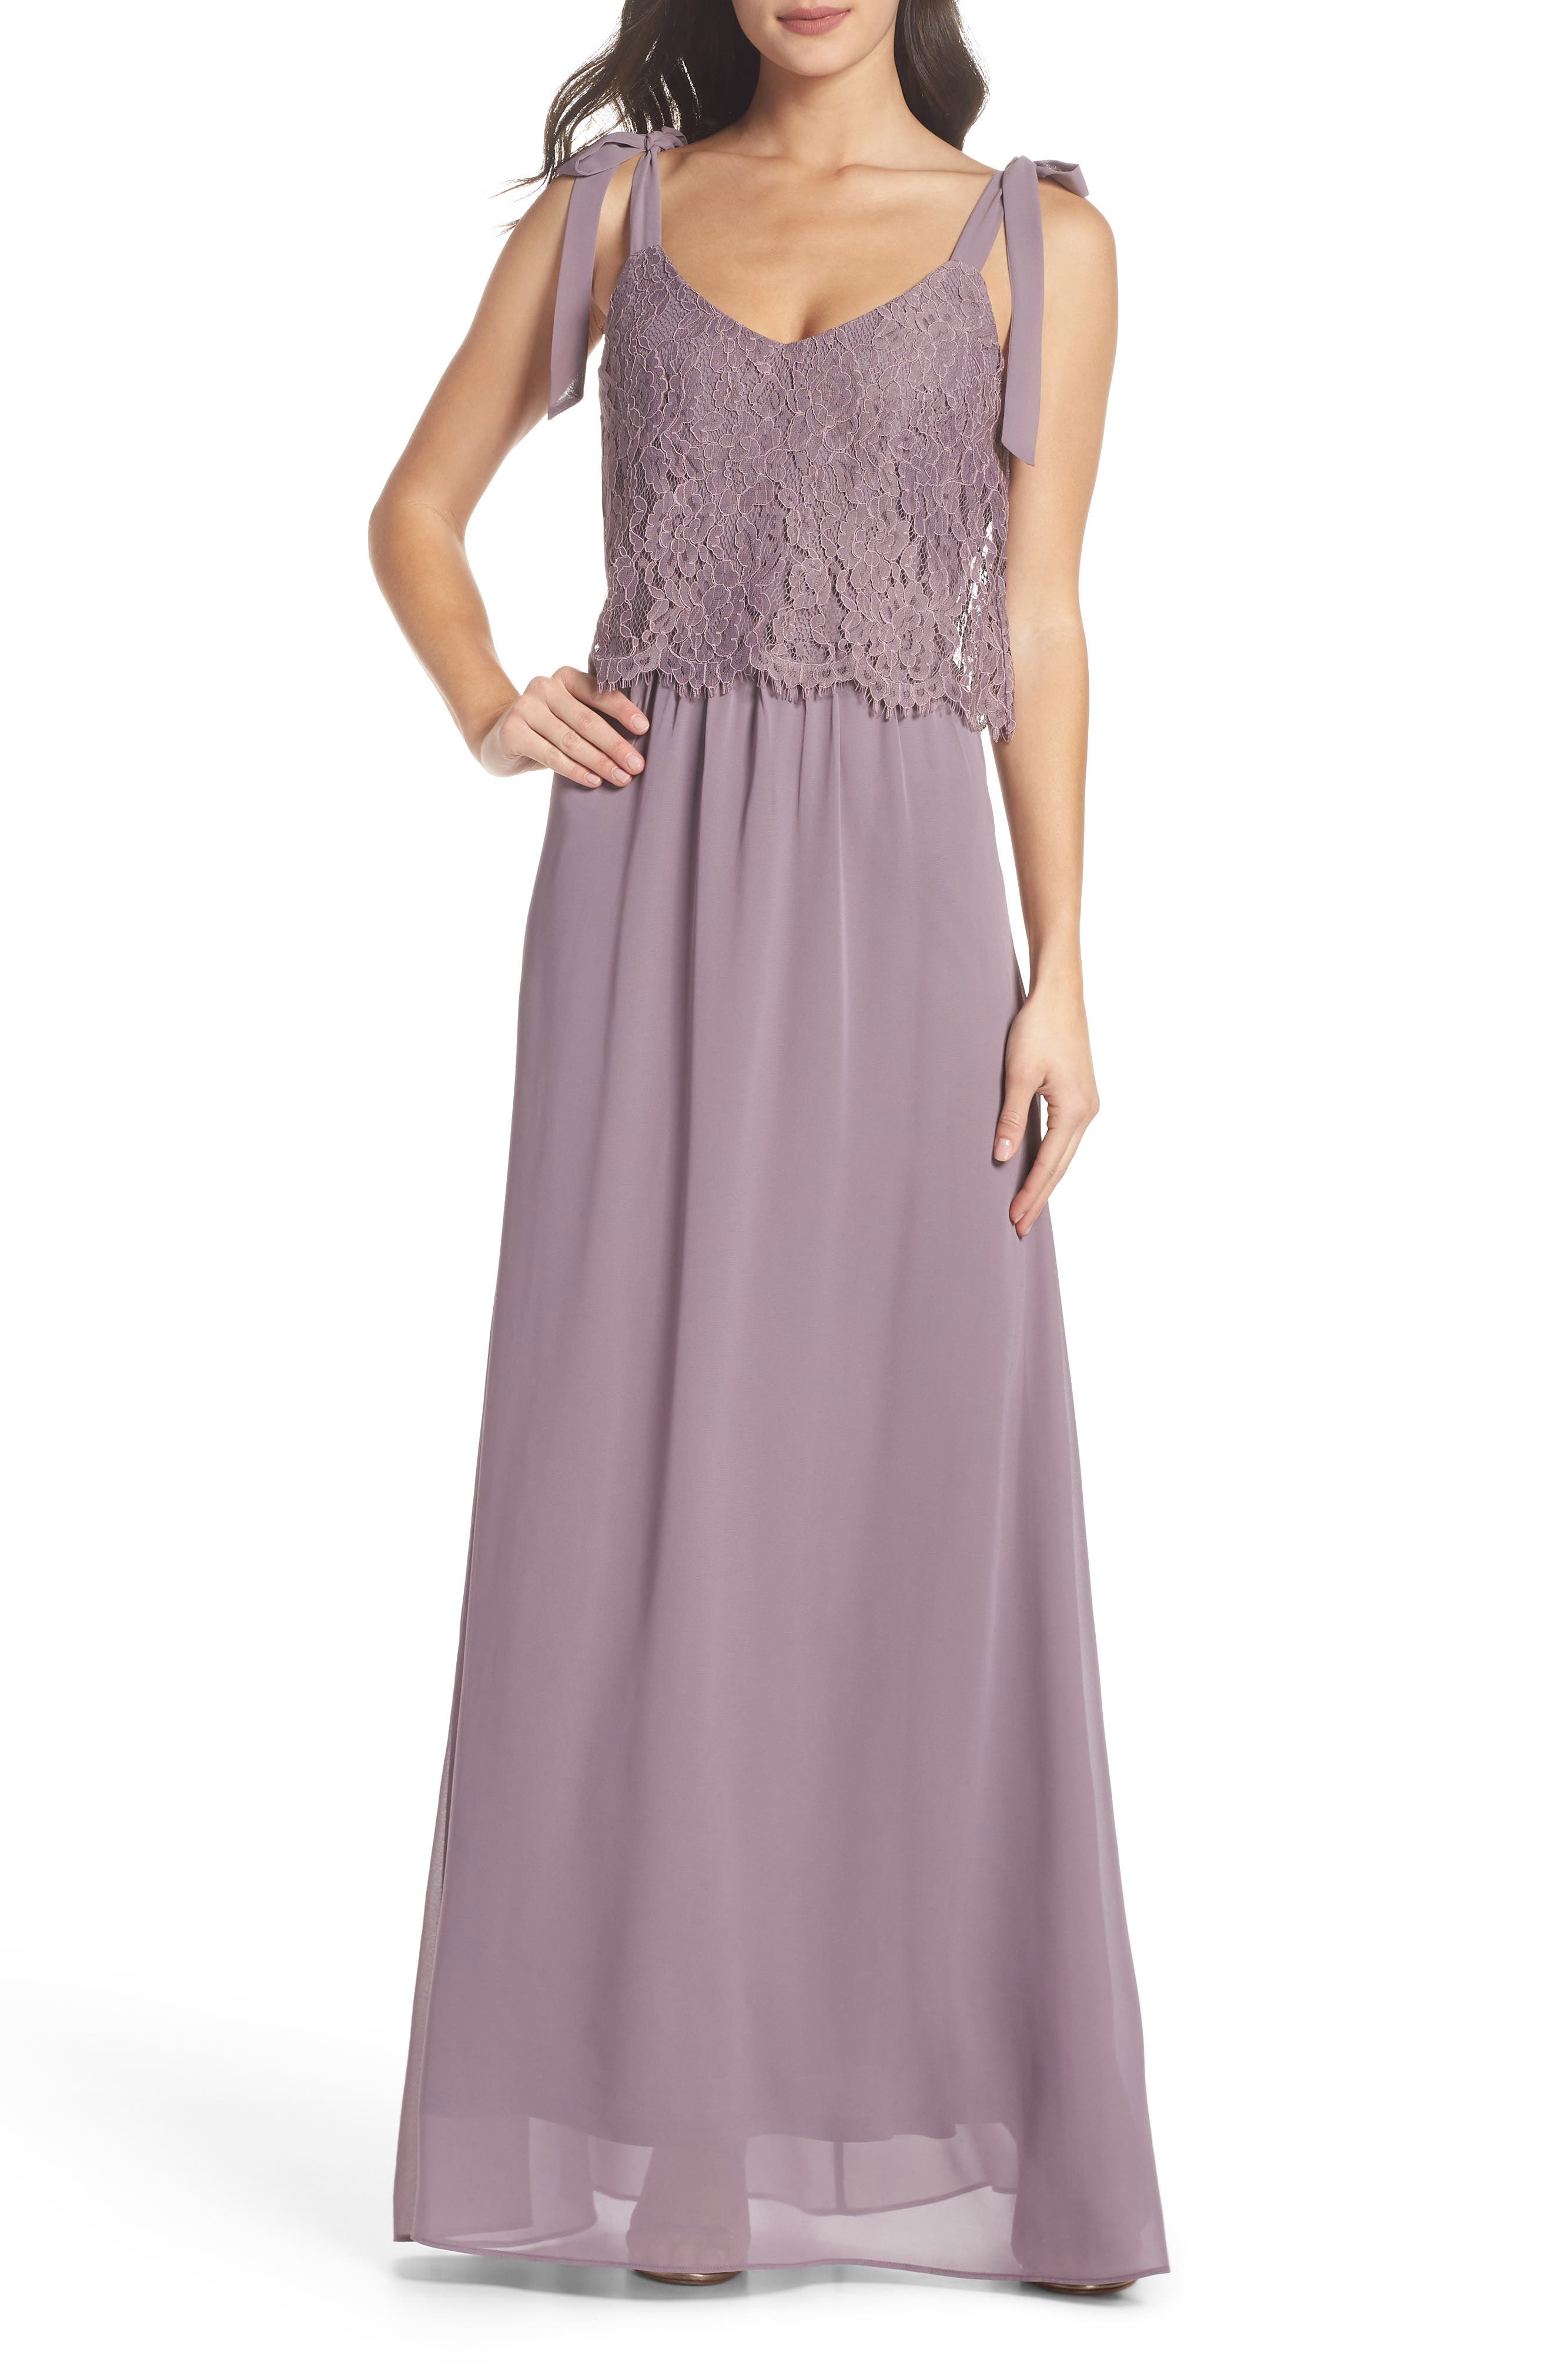 Koko Tie Shoulder Lace Bodice Gown,                             Main thumbnail 1, color,                             LILAC